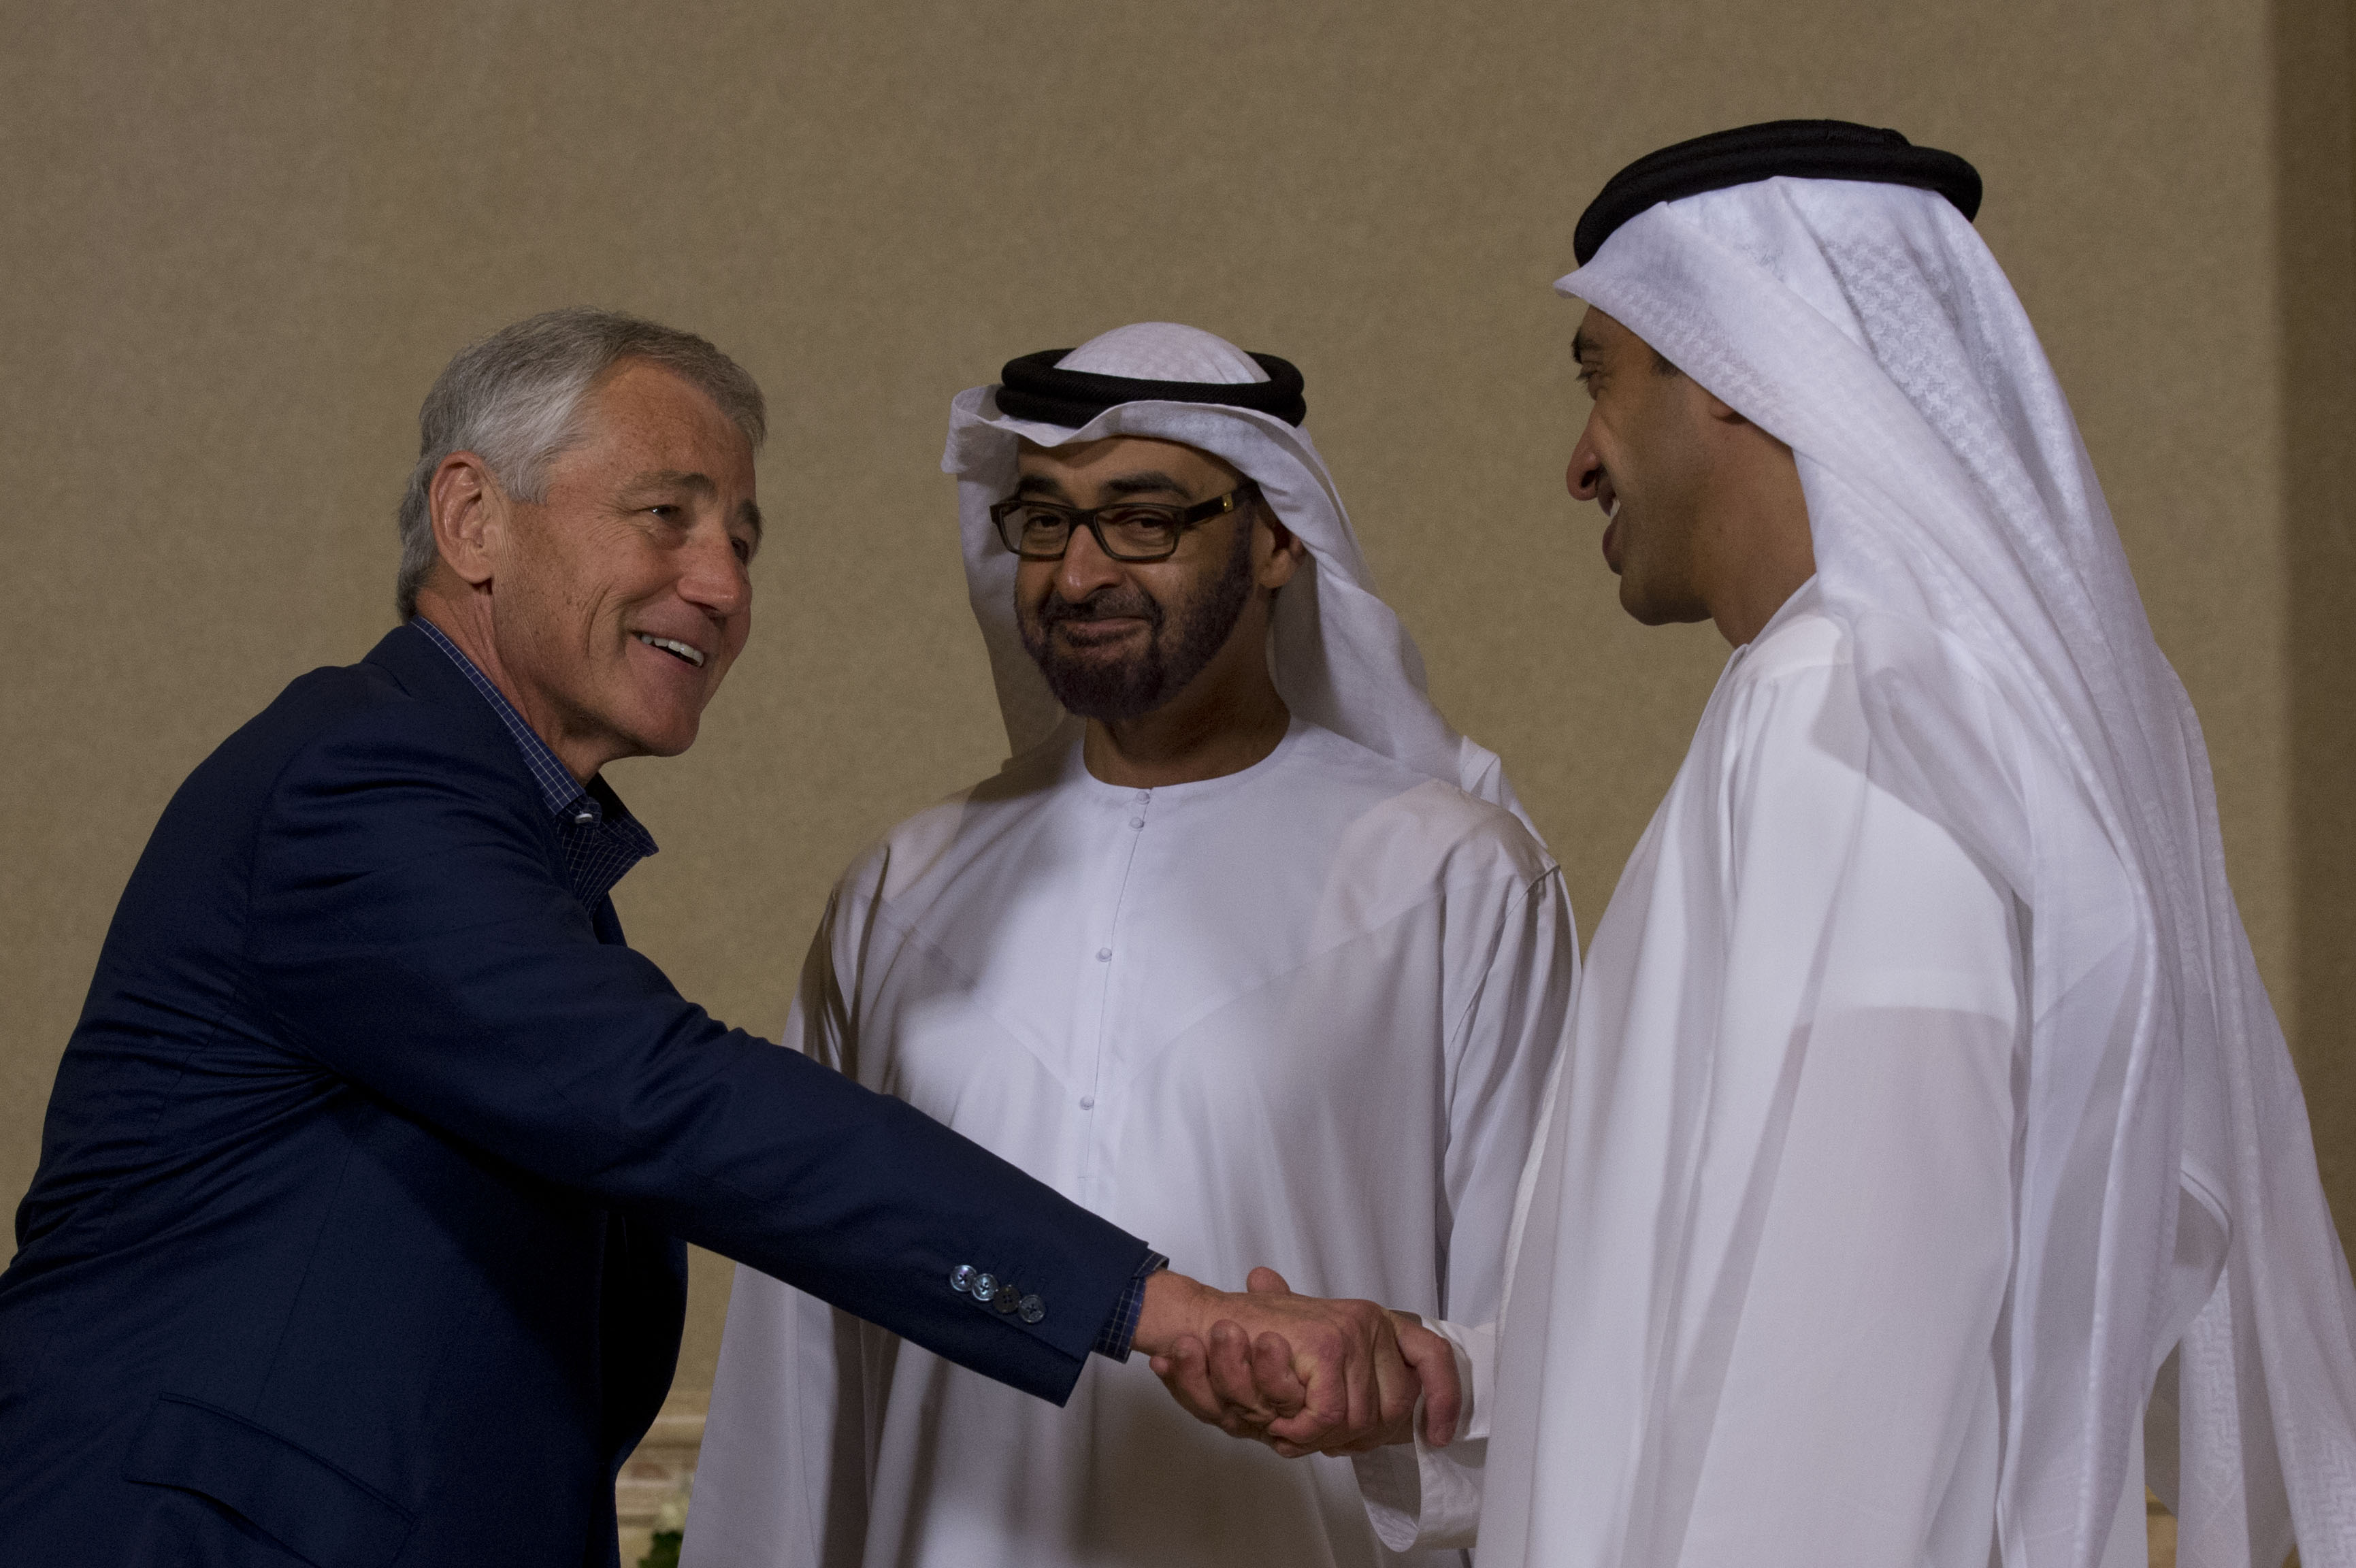 Fileus secretary of defense chuck hagel left exchanges exchanges greetings with gen mohammed bin zayed al nahyan center the crown prince of abu dhabi and the deputy supreme commander of the united arab m4hsunfo